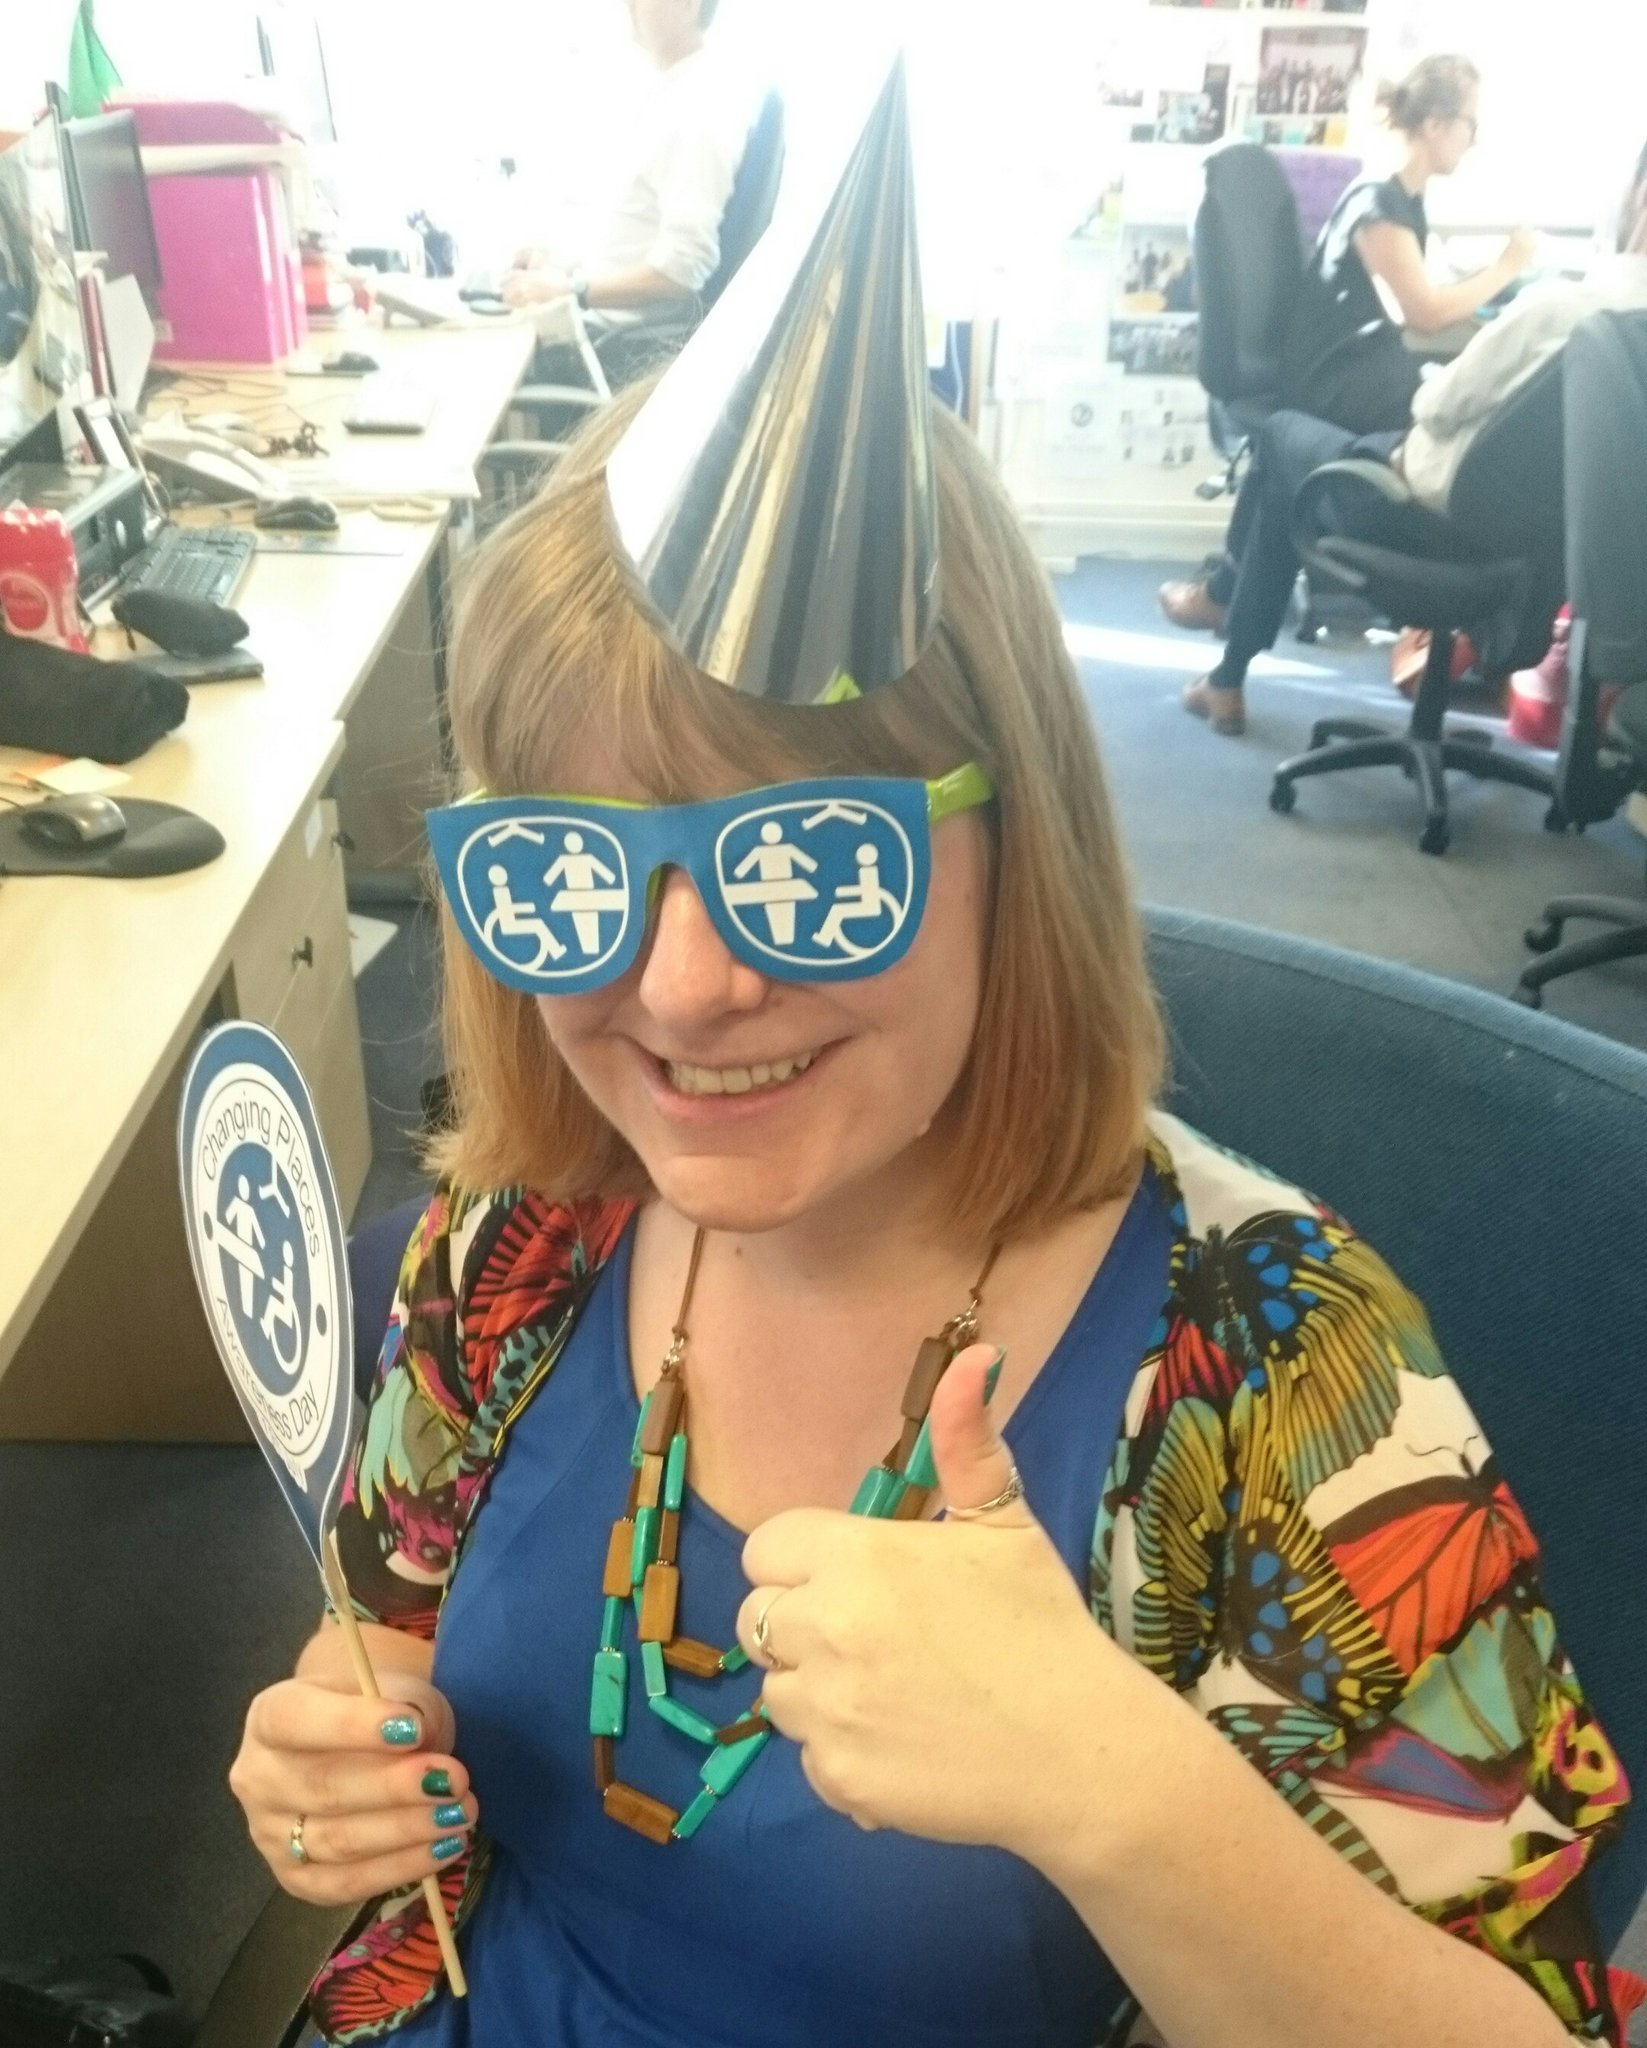 In the party mood today as it's #ChangingPlaces 10th birthday! Proud to be part of the fight for #incLOOsion https://t.co/Cobx6zLFQ9